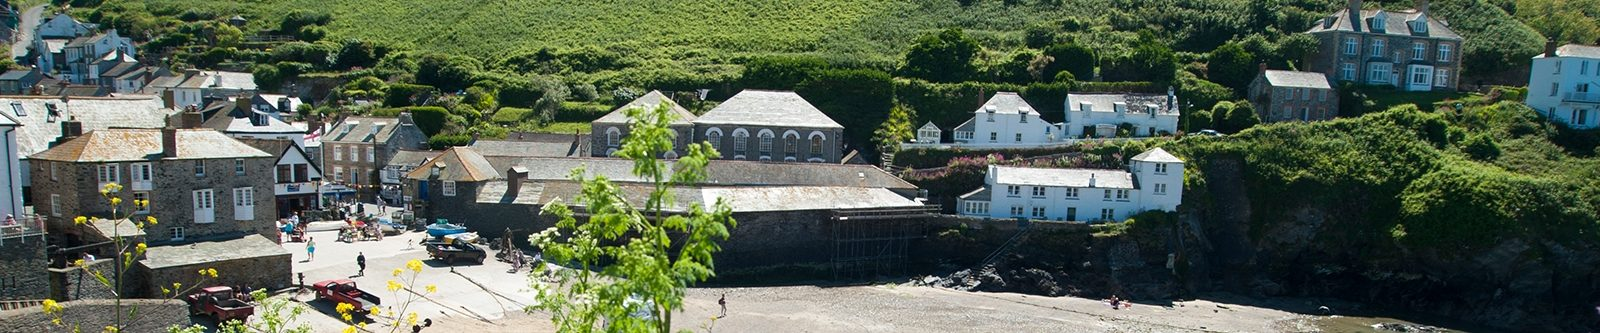 buildings in Port Isaac